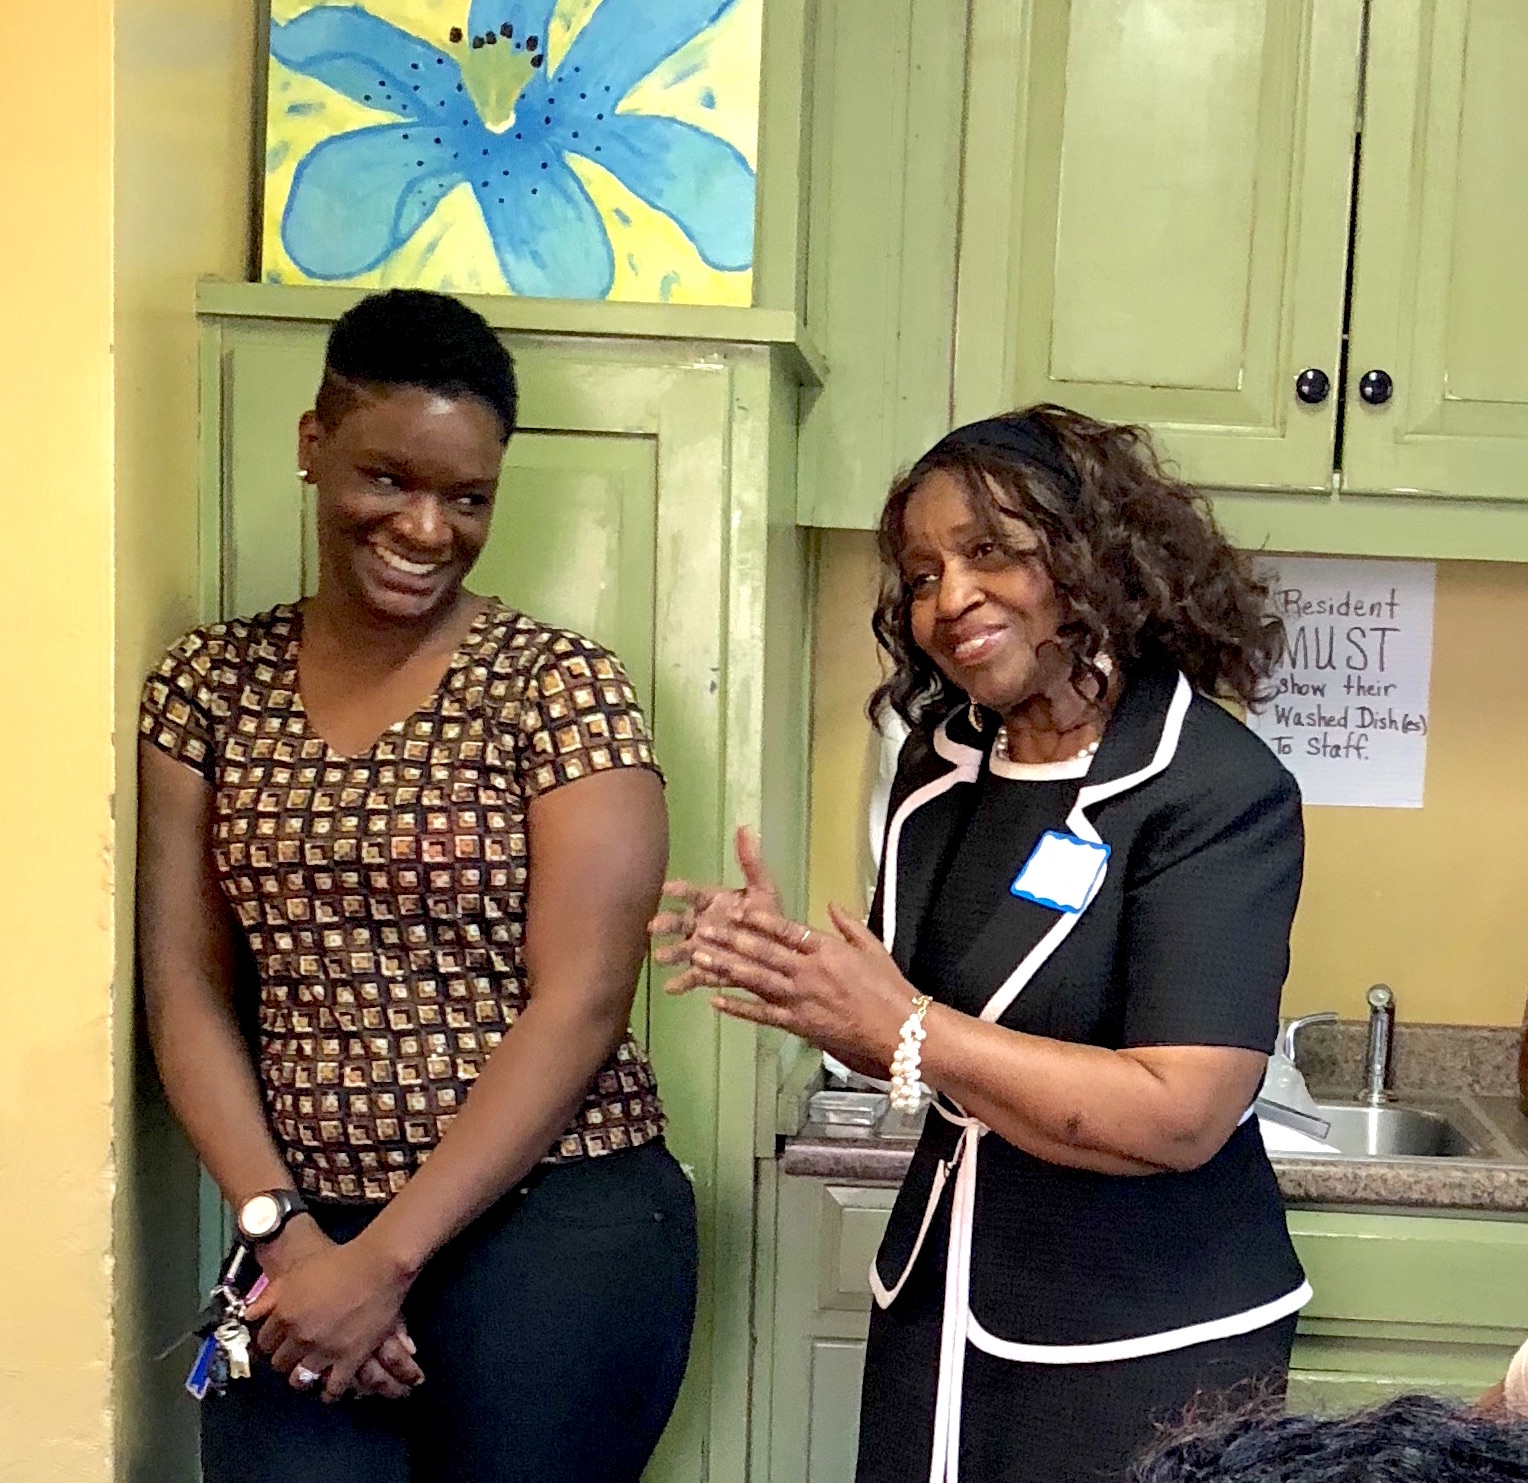 Rosette's story - Now a poised young woman with a family of her own, Rosette recently visited The Bridge to share her story. She had been placed in 32 foster homes and 12 lock-down facilities. At The Bridge, she found a family.